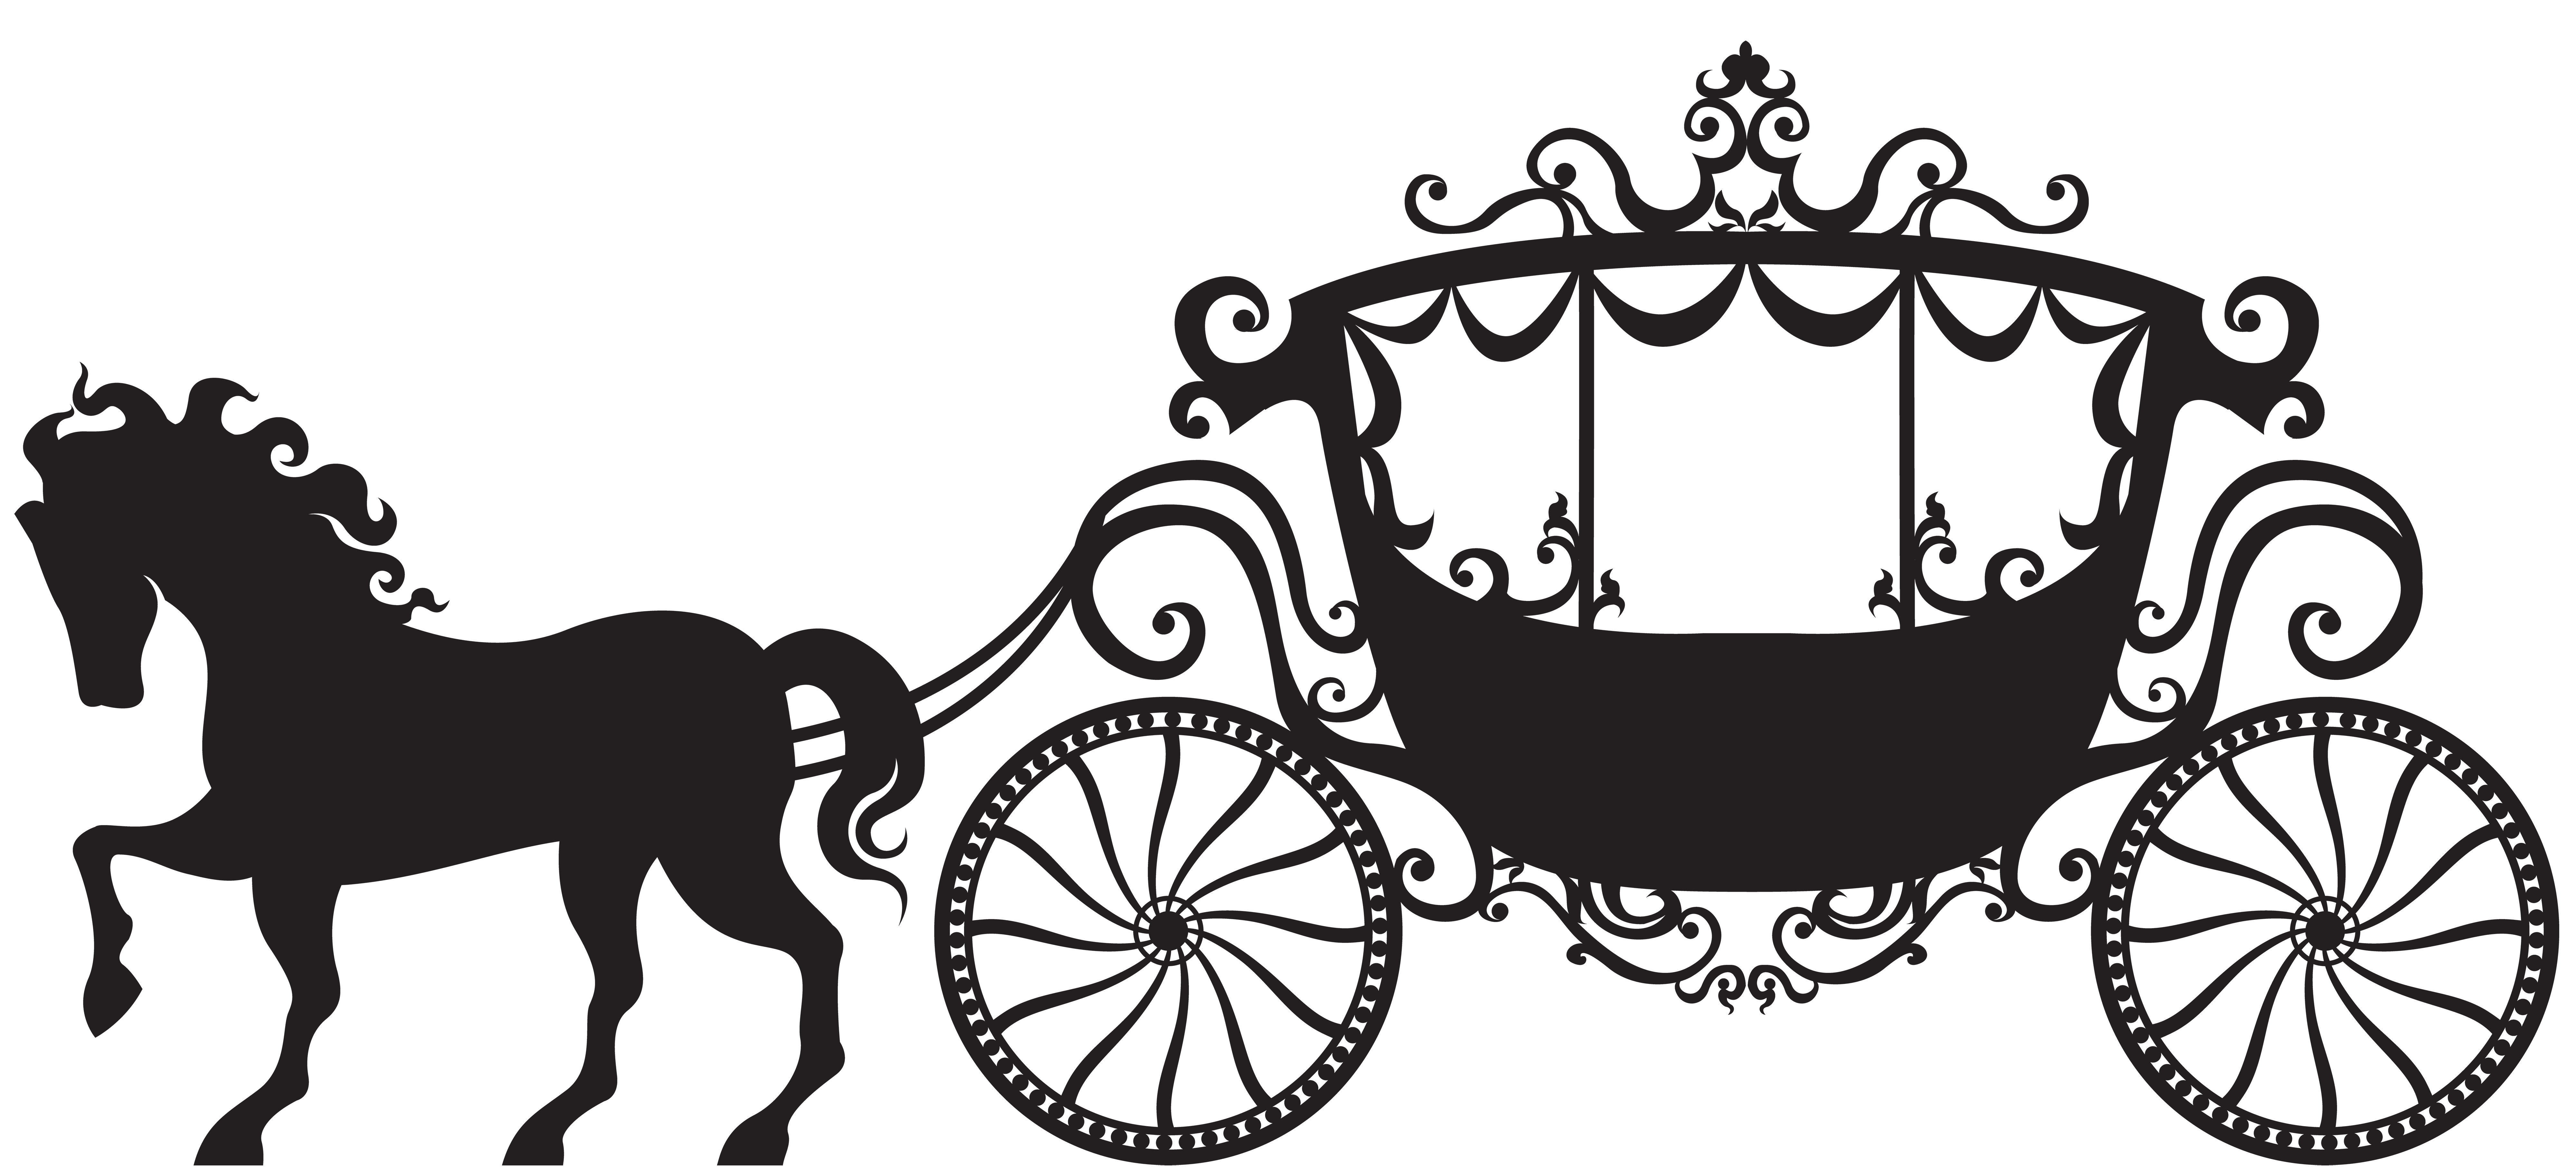 Carriage clipart Image Silhouette size Clip View